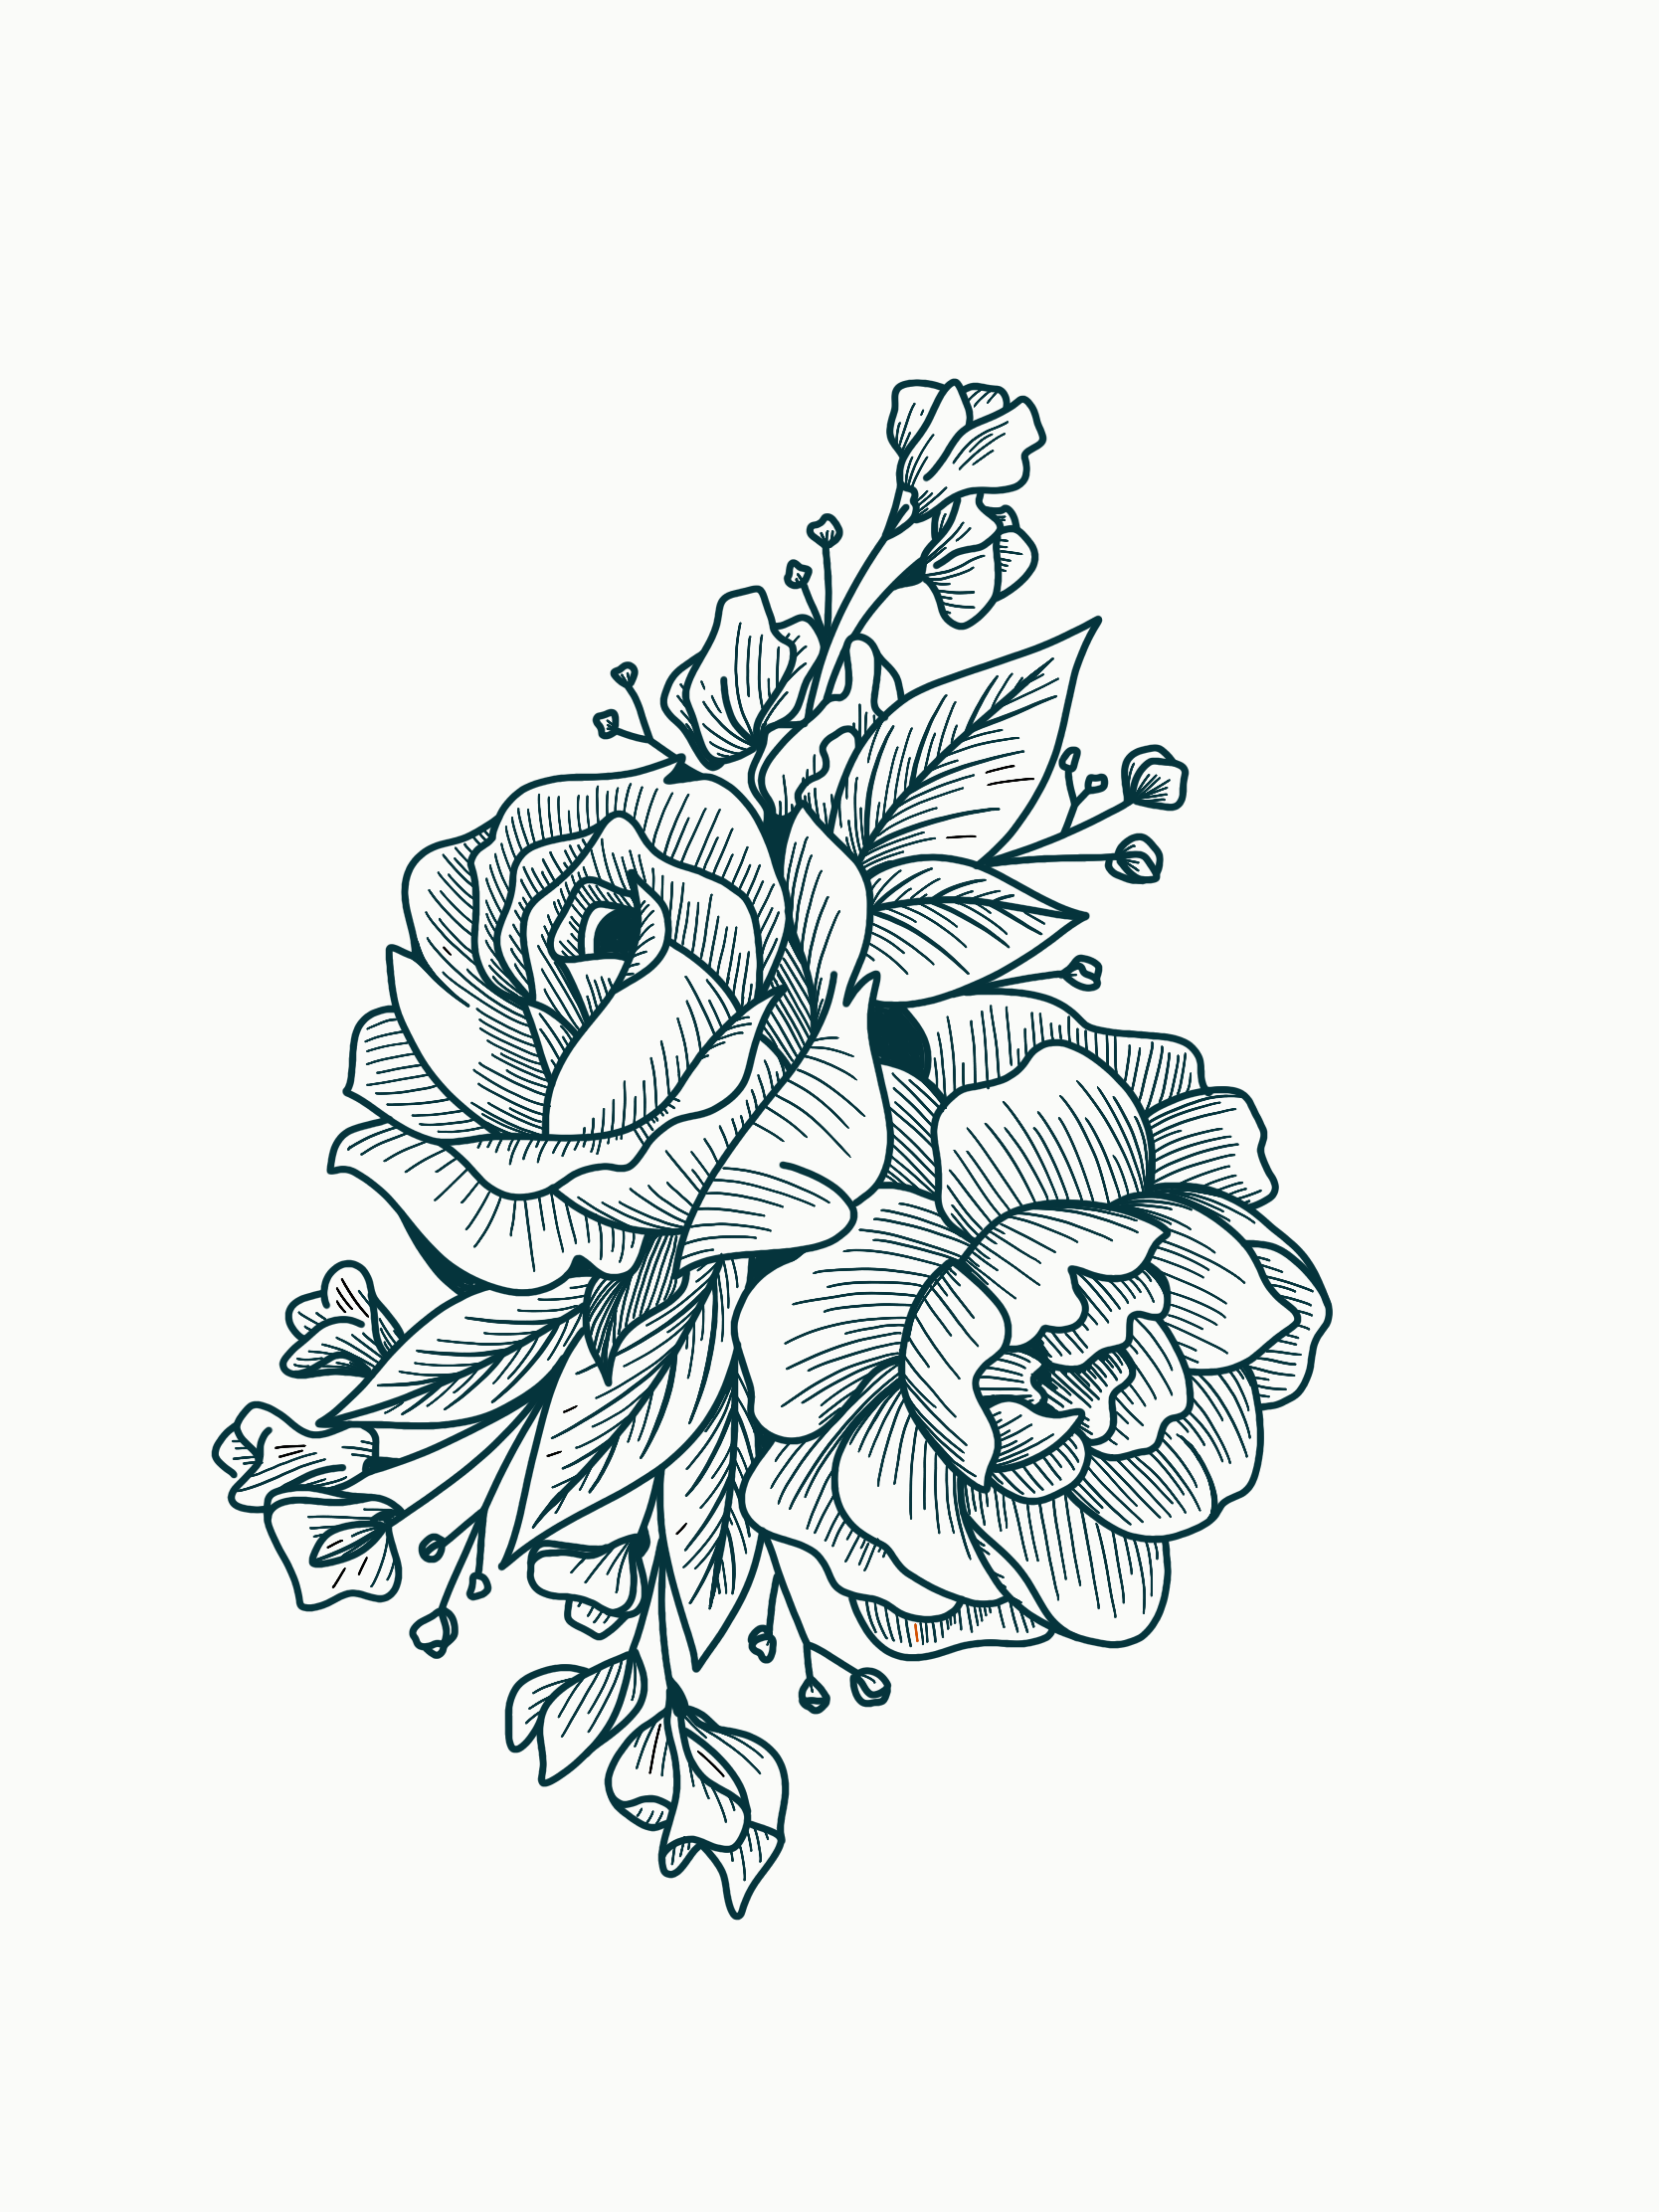 Tattoo Design Inspiration Line Work Florals Rose Peony Baby S Breath And Sweetpea Kylie Stinson Art With Images Rose Tattoo Design Line Art Tattoos Rose Line Art